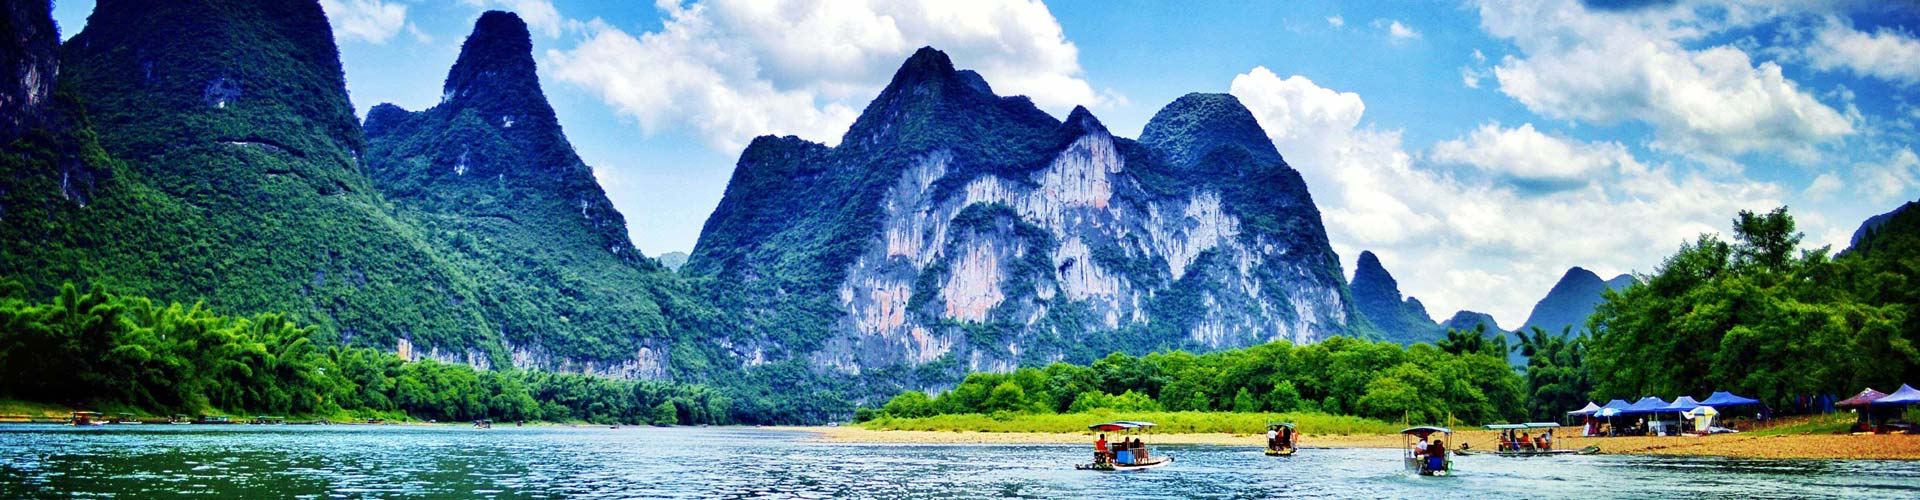 7 Days Guilin-Xian-Shanghai Private Tour with Hotel Package